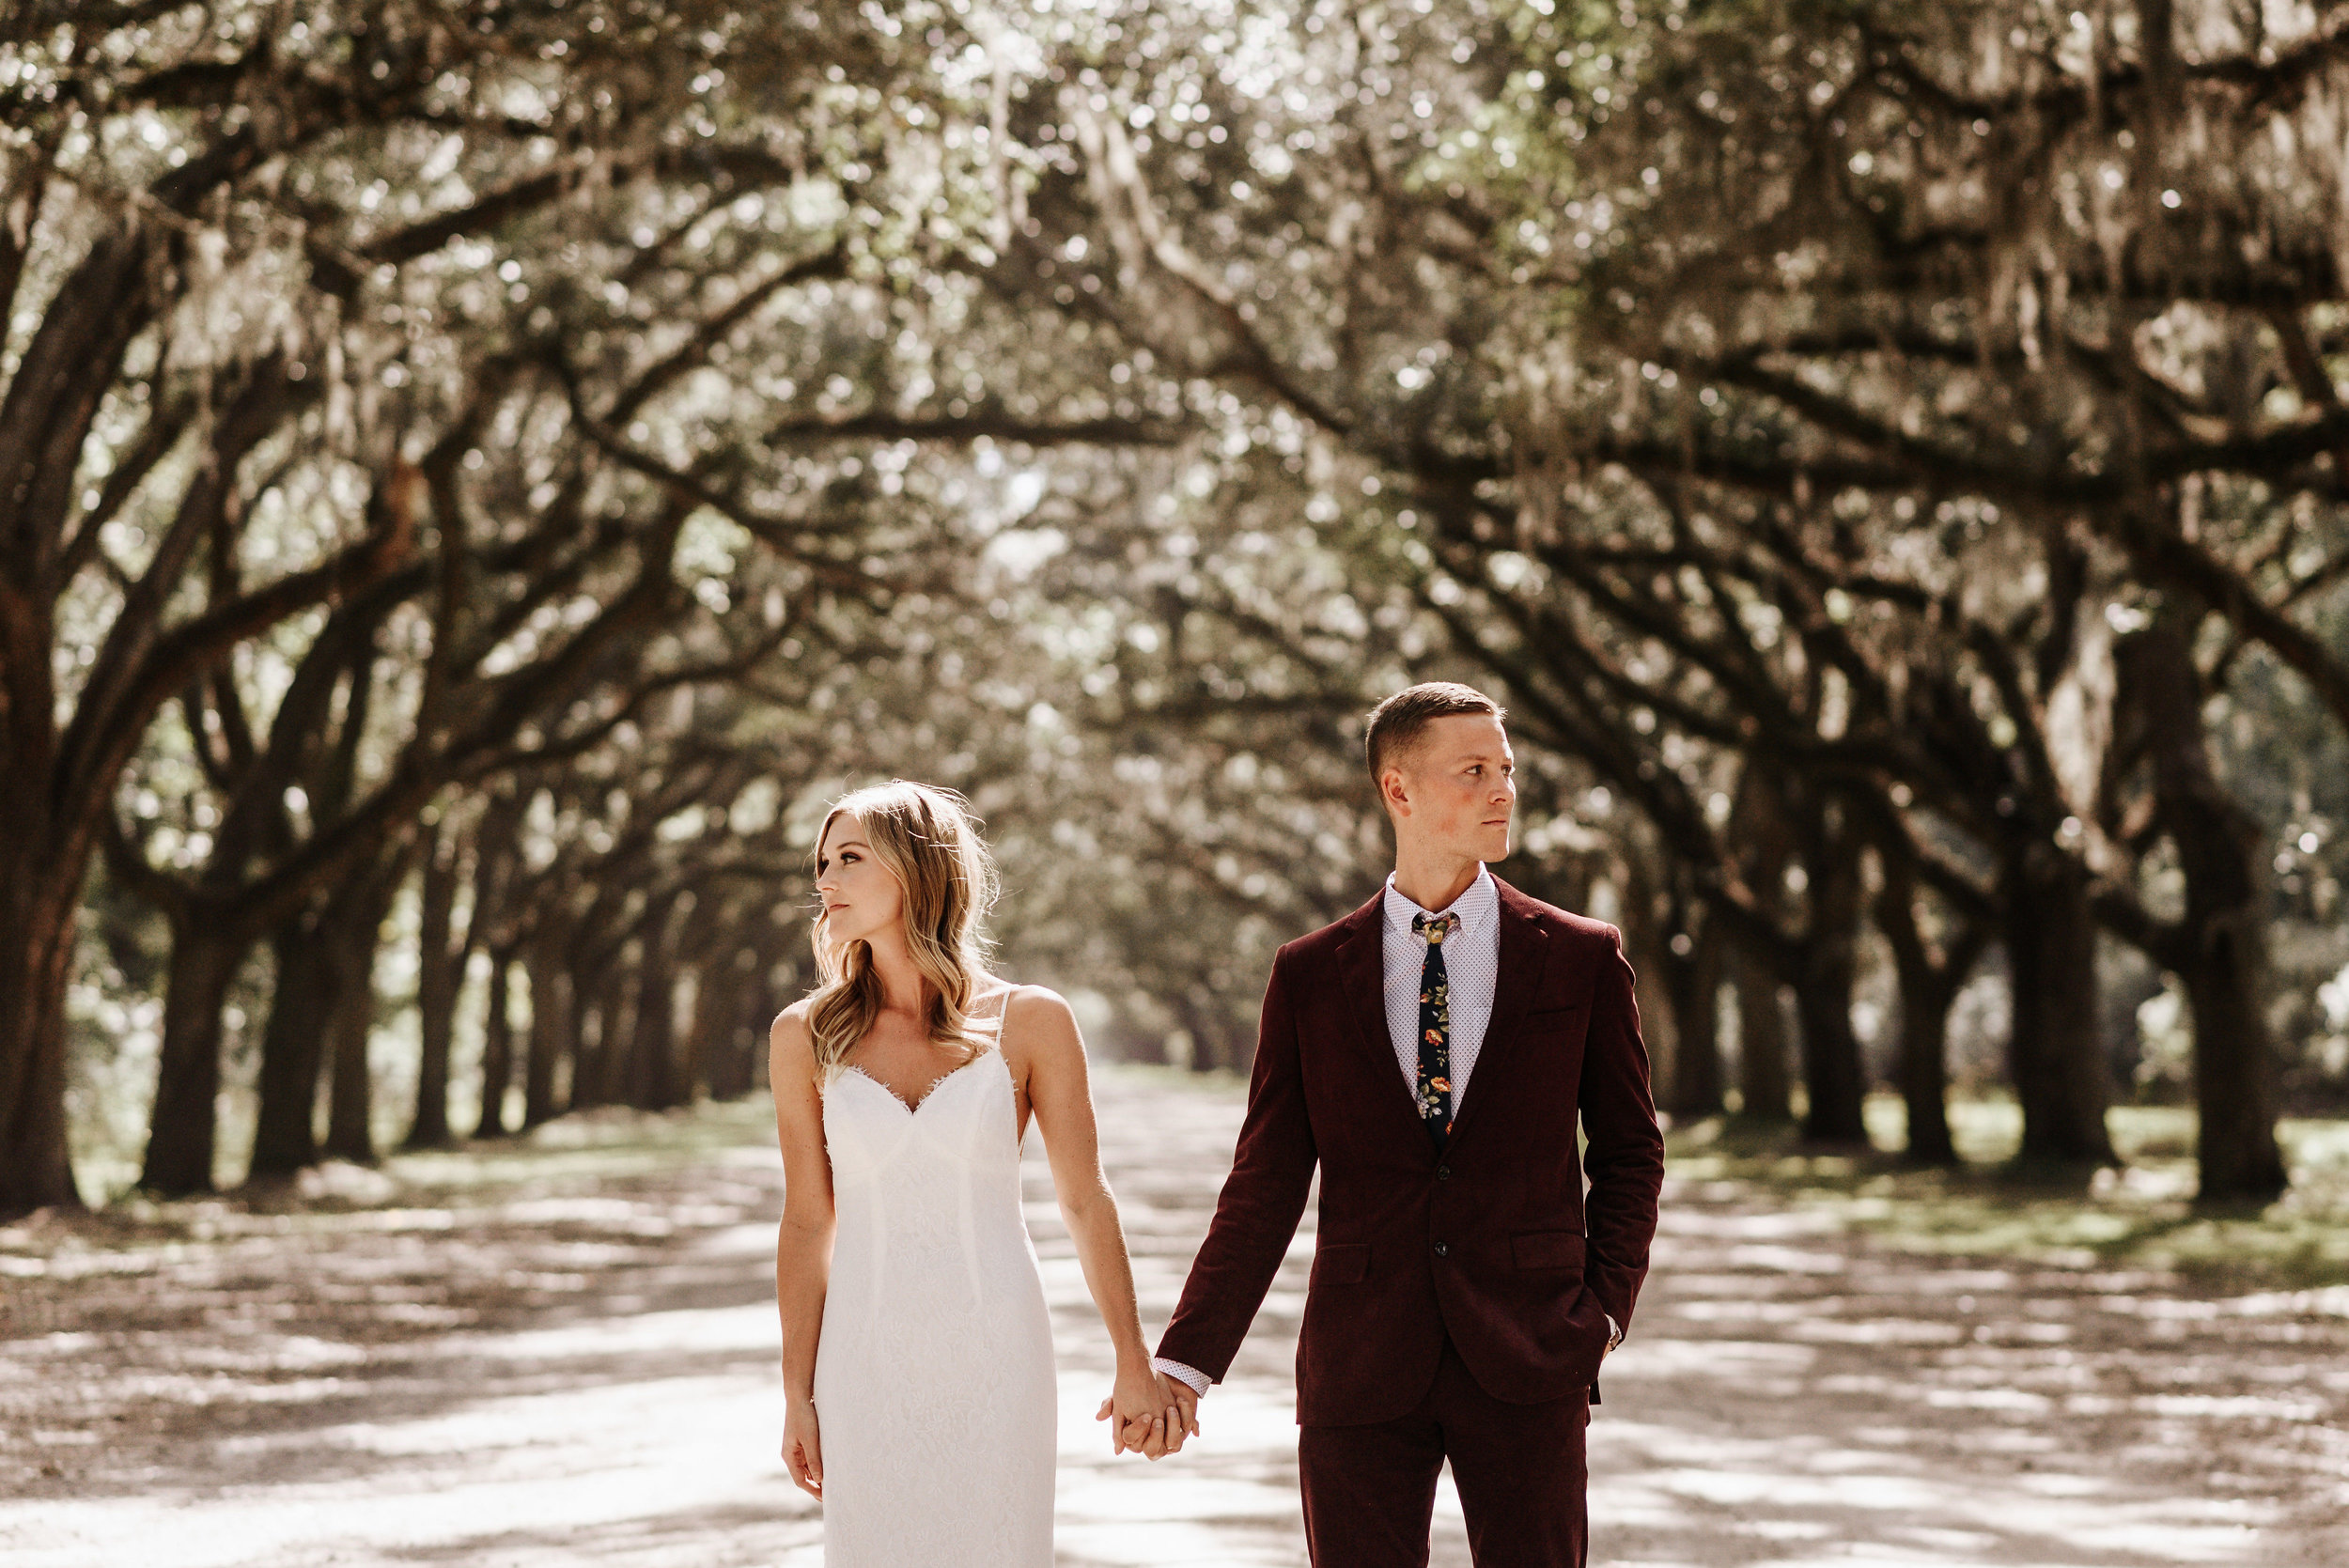 Kourtney_Sean_Savannah_Georgia_Wedding_Wormsloe_Histroic_Site_Coastal_Georgia_Botanical_Gardens_Photography_by_V_6773.jpg